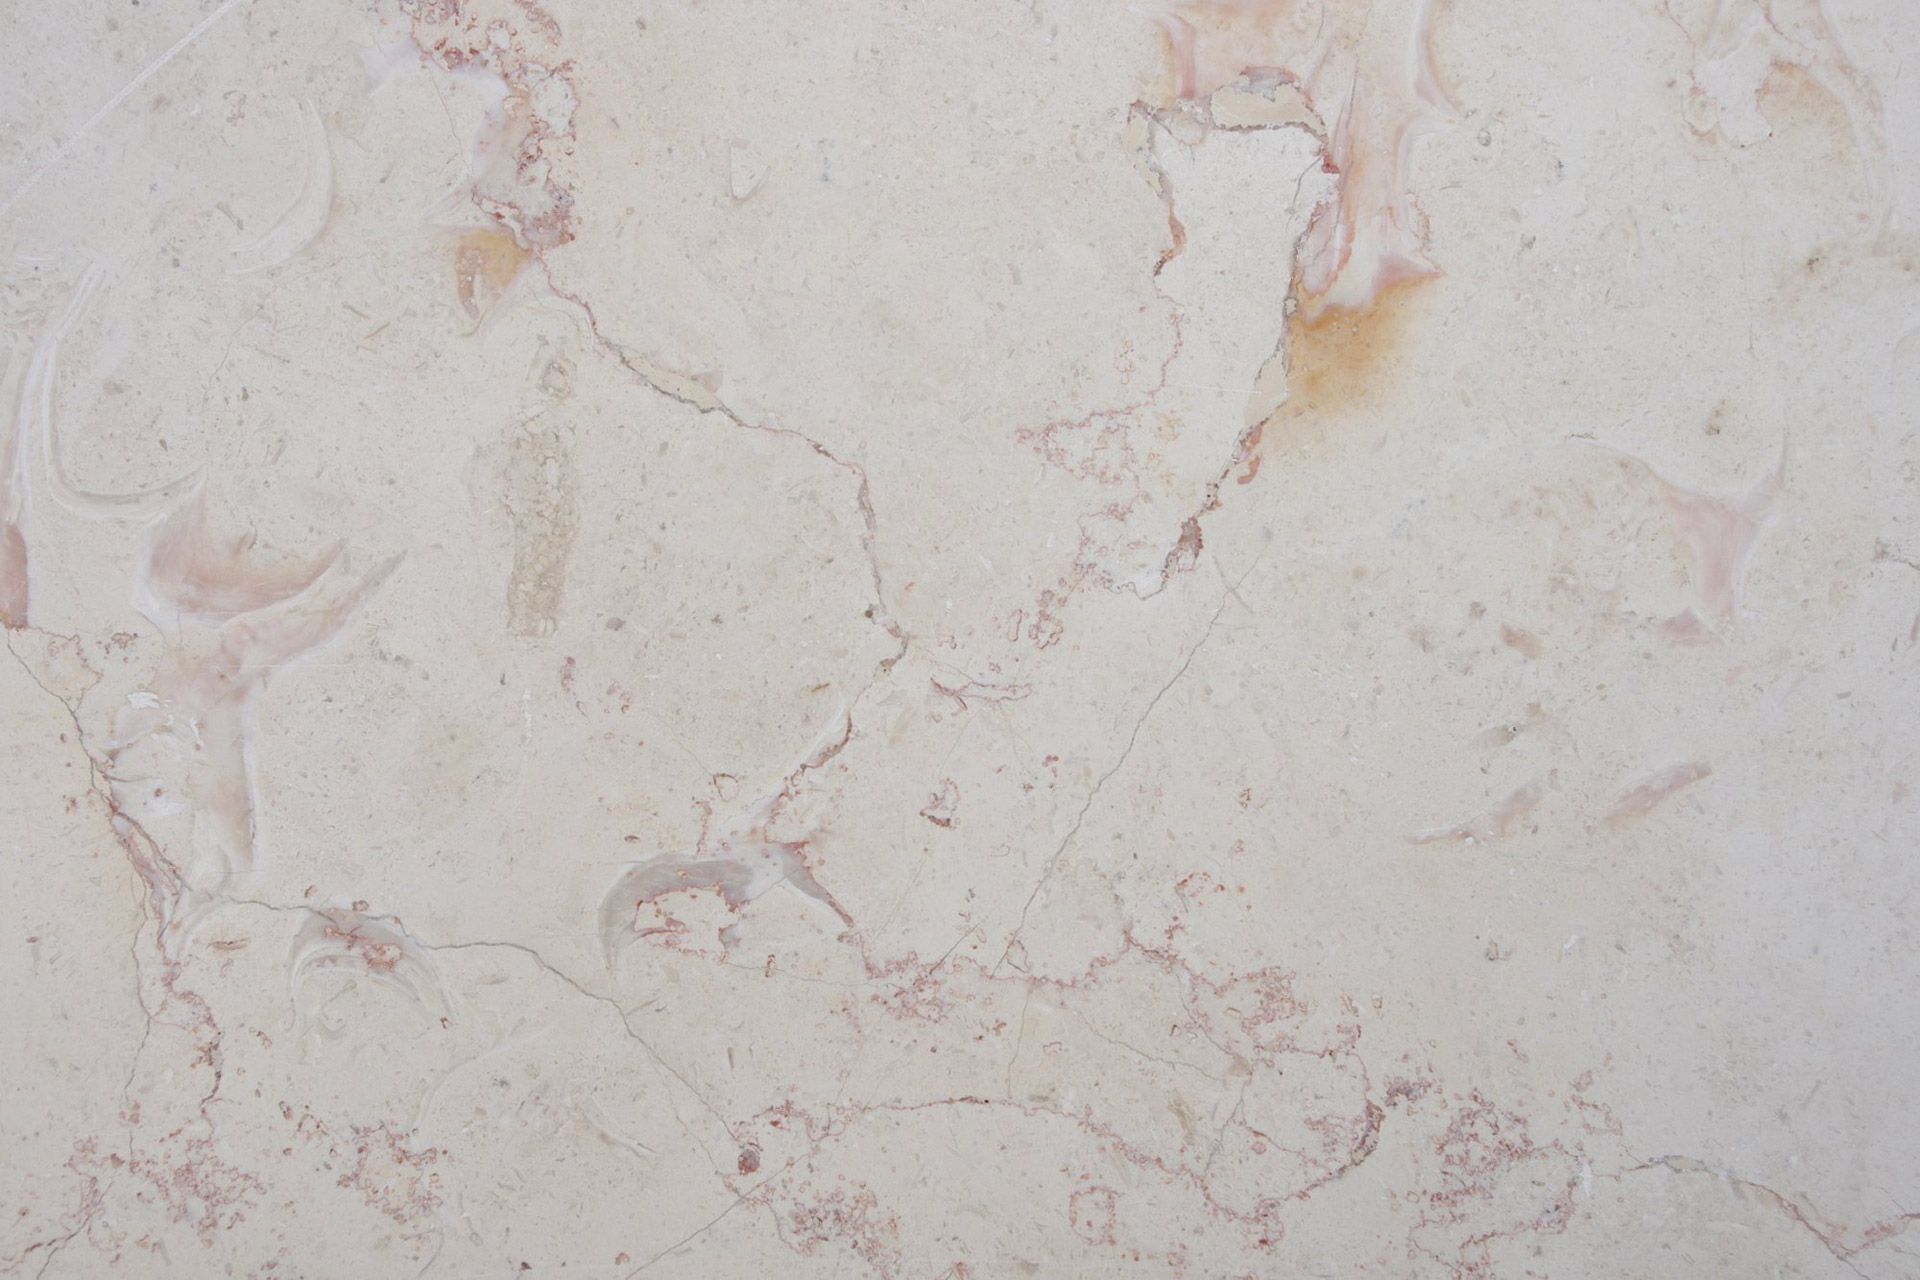 Marble Wallpaper With Quotes For Desktop Marble Background Free Stock Photo Public Domain Pictures